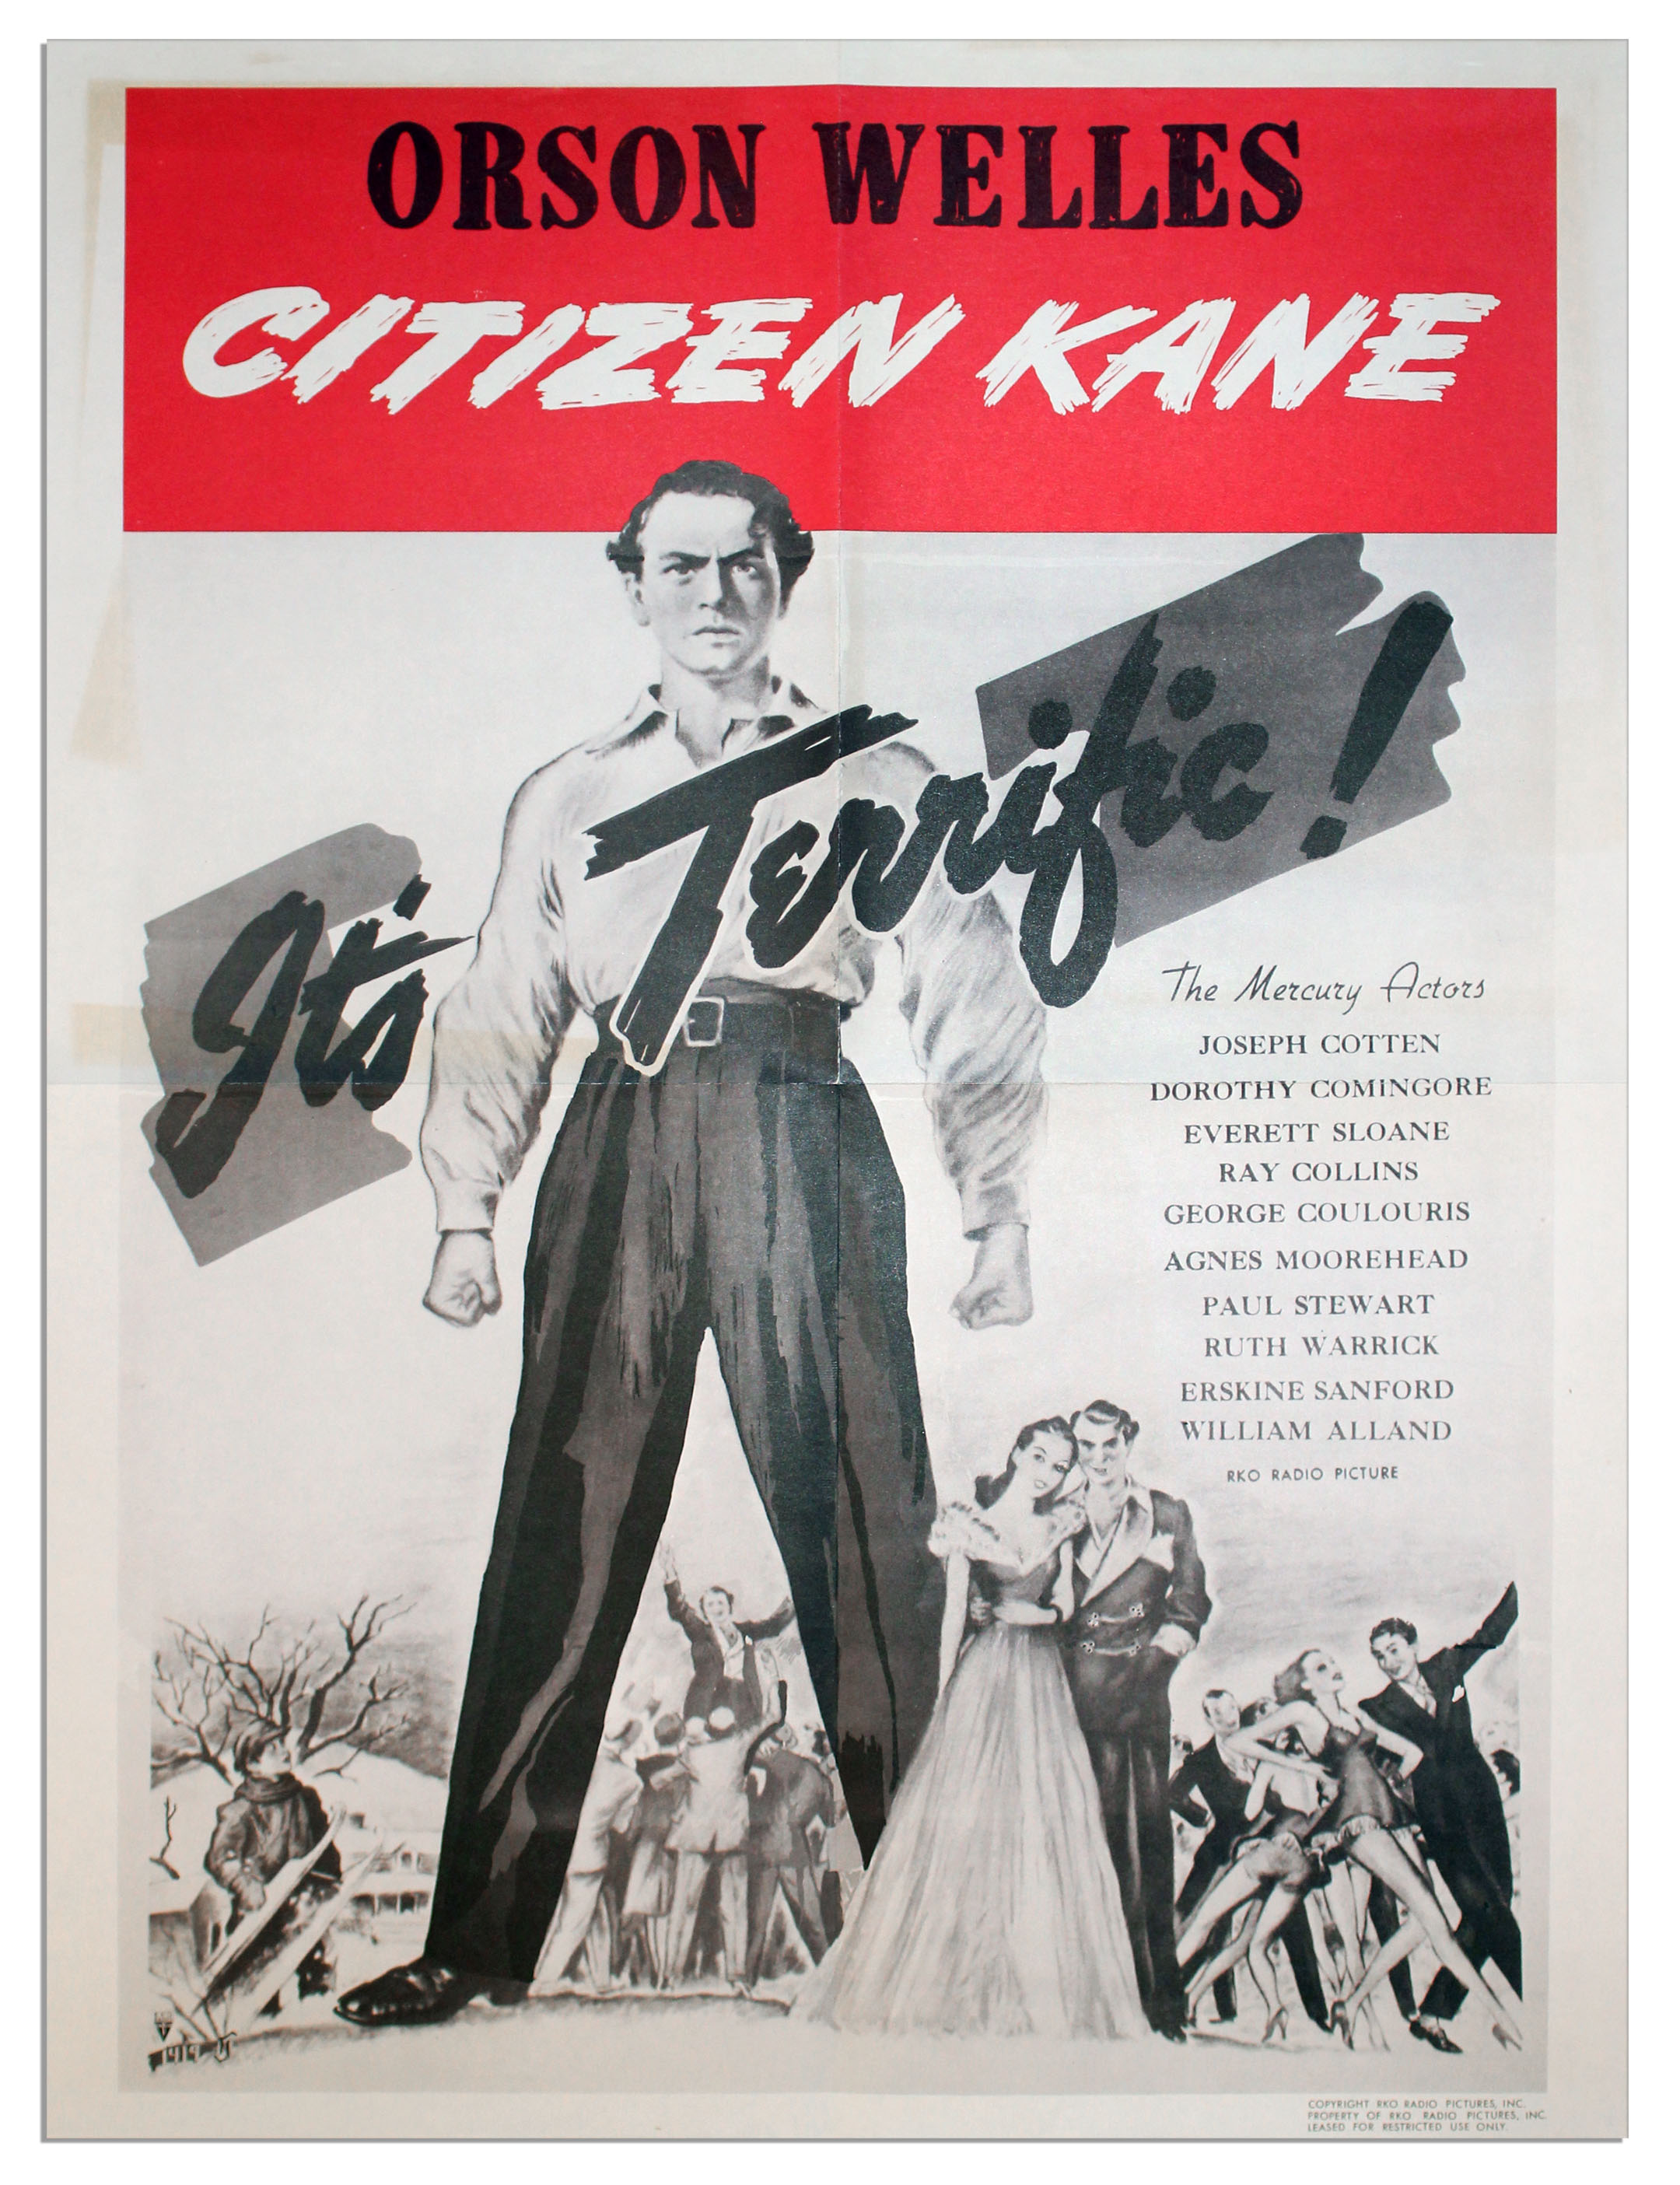 engl 284 citizen kane essay Citizen kane introduced major cinematic advance on various fronts in film making perhaps a huge influence came from its use of flash backs.